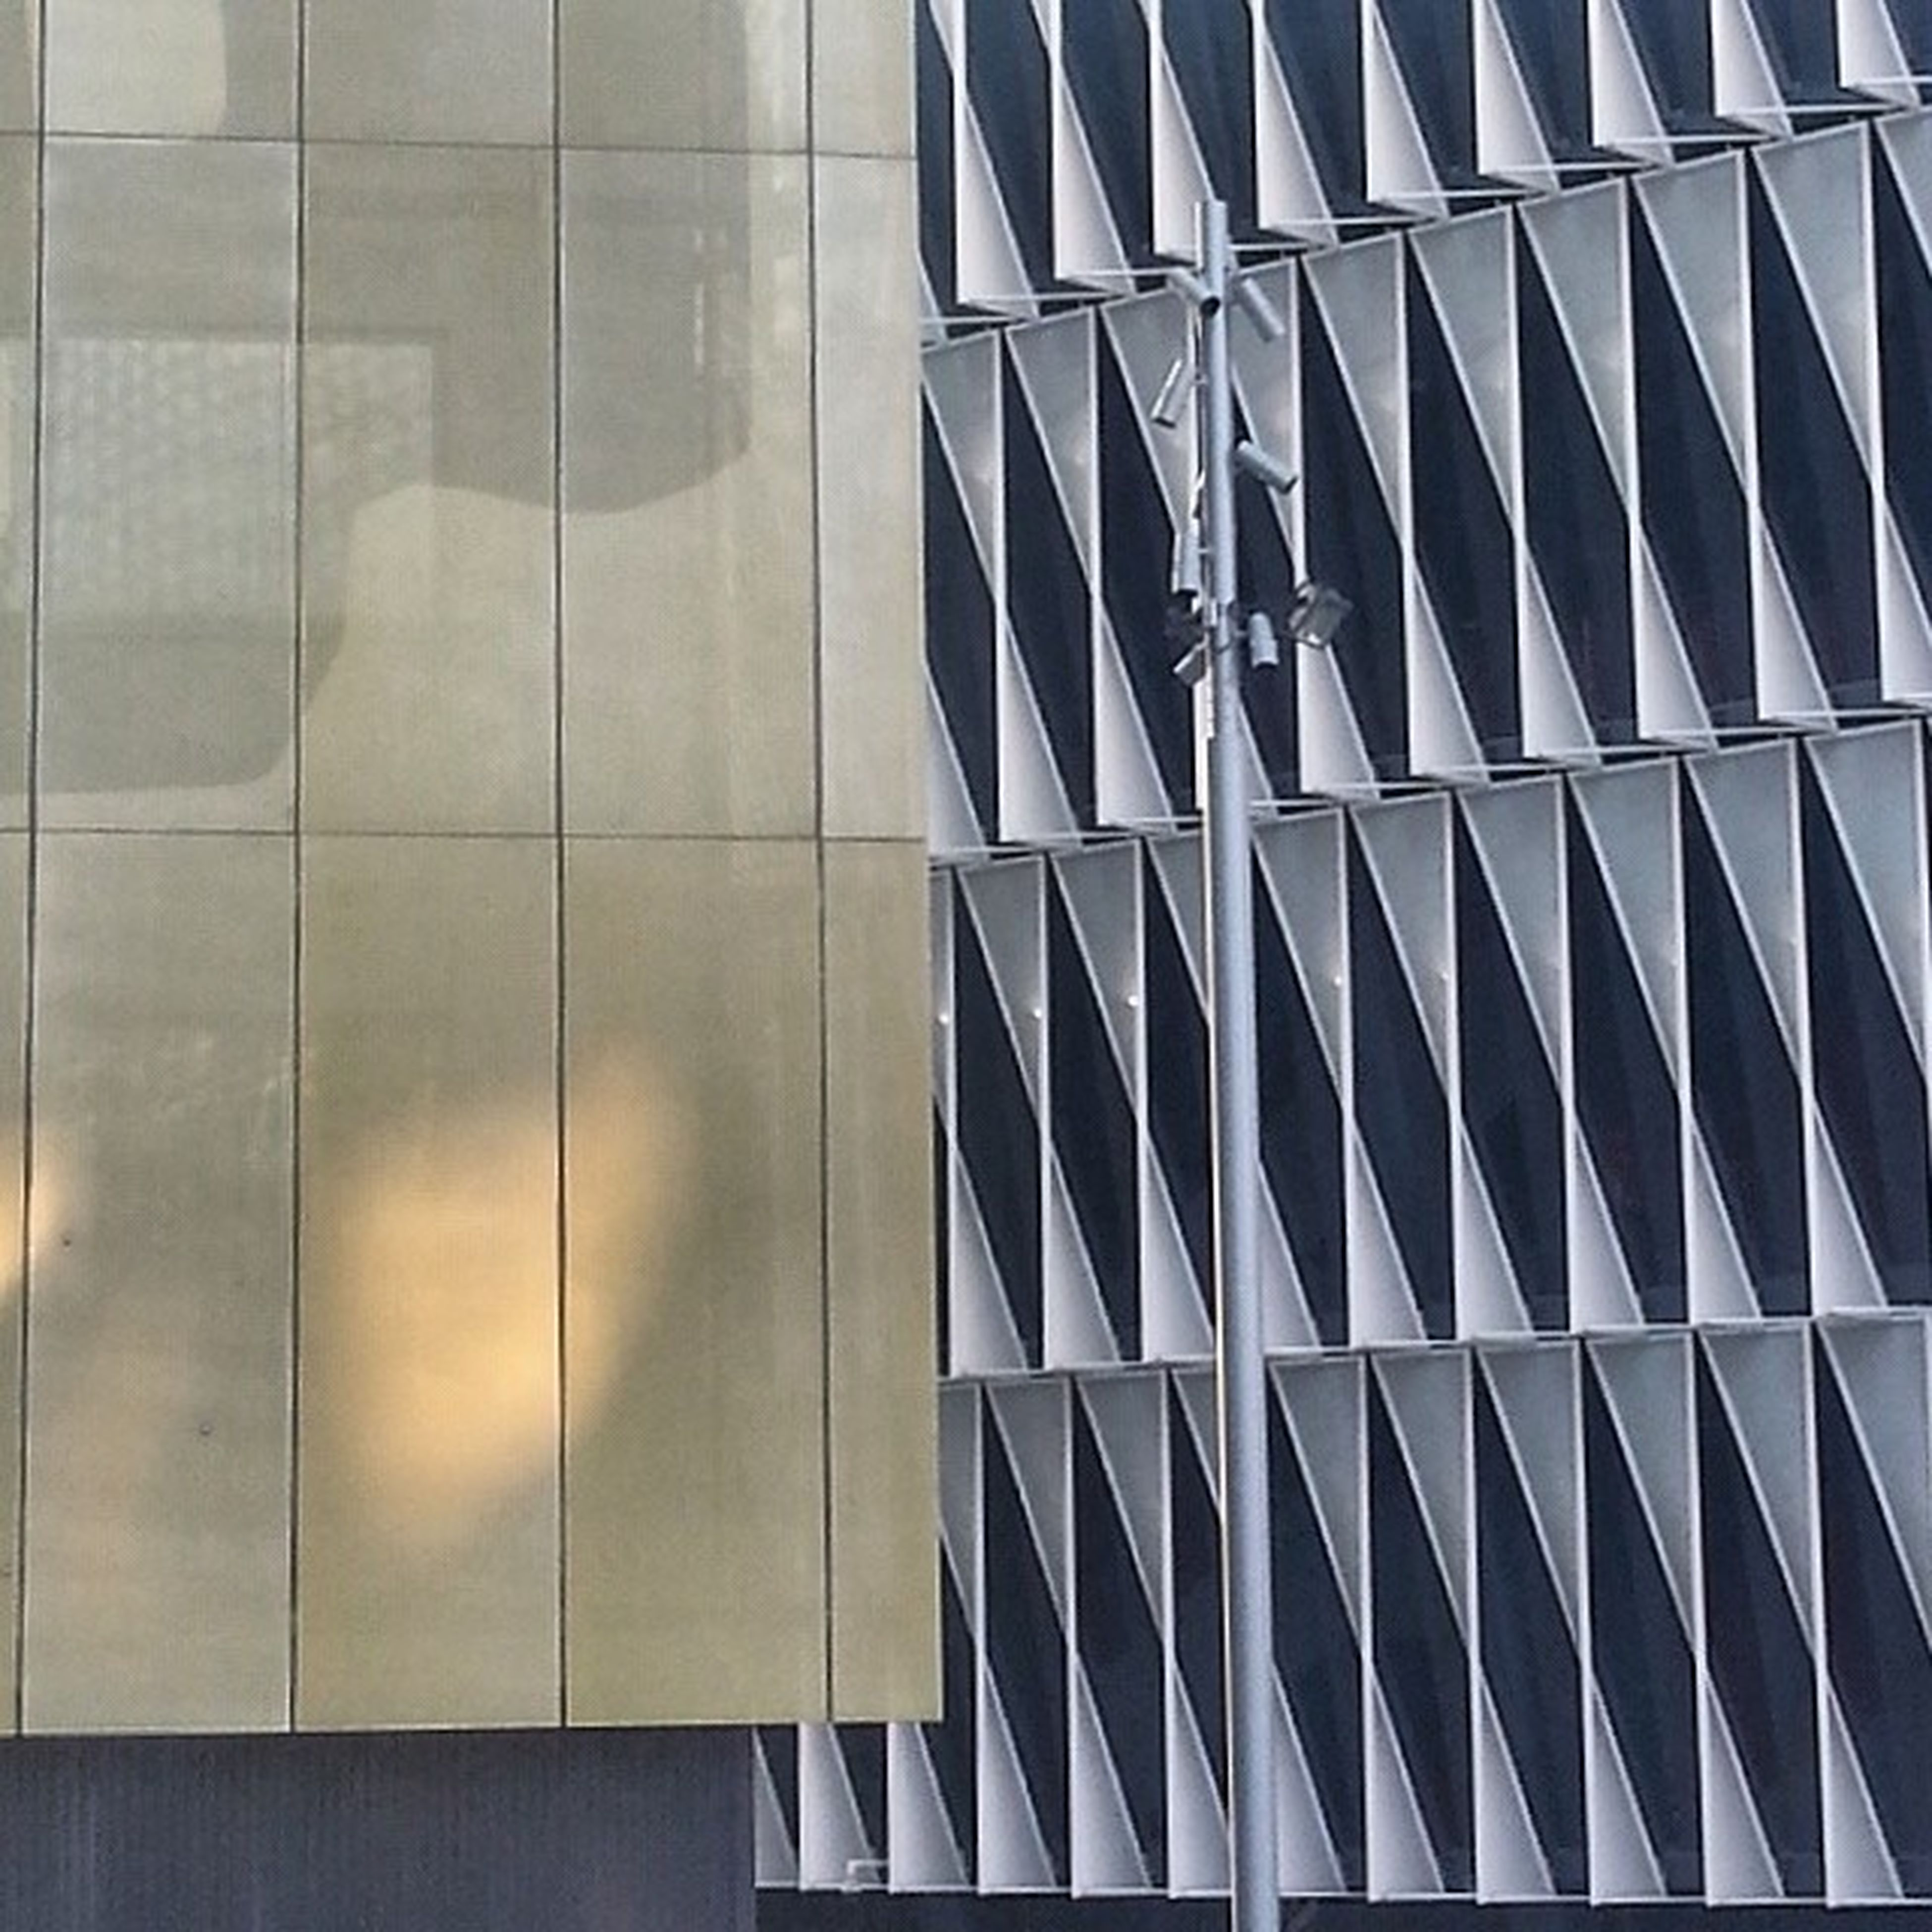 architecture, modern, built structure, building exterior, glass - material, office building, reflection, skyscraper, low angle view, city, tall - high, pattern, tower, building, window, architectural feature, geometric shape, glass, sky, day